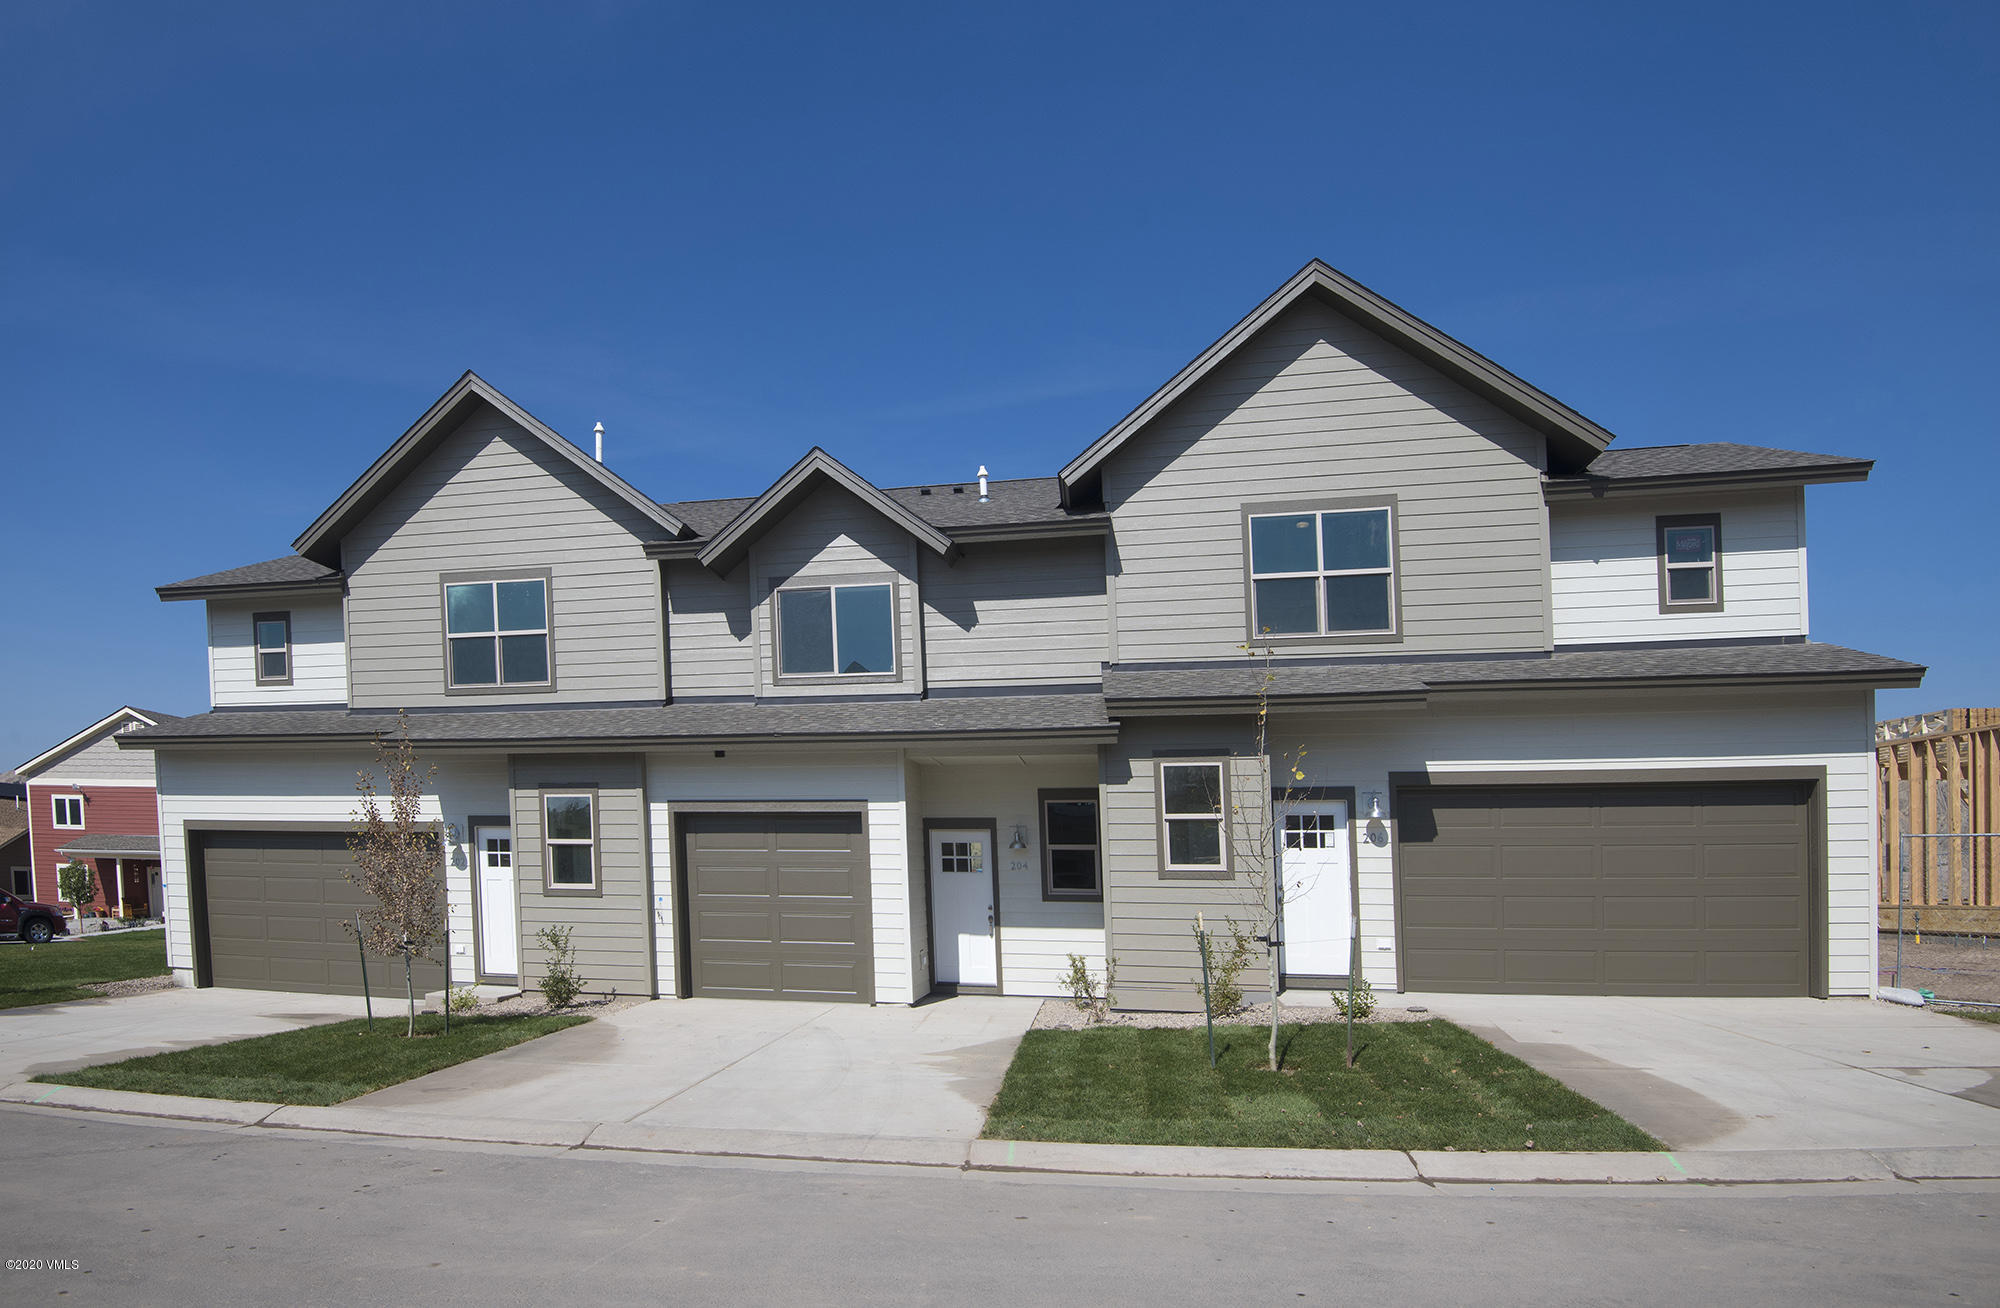 BRAND NEW TOWNHOME! Well-designed, site-built, 3 bedroom, 2.5 bath home with an attached 1-car garage. Incredibly convenient location close to Costco, Gypsum Rec Ctr, and Eagle County Airport. Only minutes to world-class recreation of all types. Standard finishes include vaulted ceilings, LVT flooring, laminate countertops, kitchen pantry, & Whirlpool appliances. Upgrades are available as well! Laundry room conveniently located on the bedroom level. This is an end unit and offers plenty of light. WELCOME!